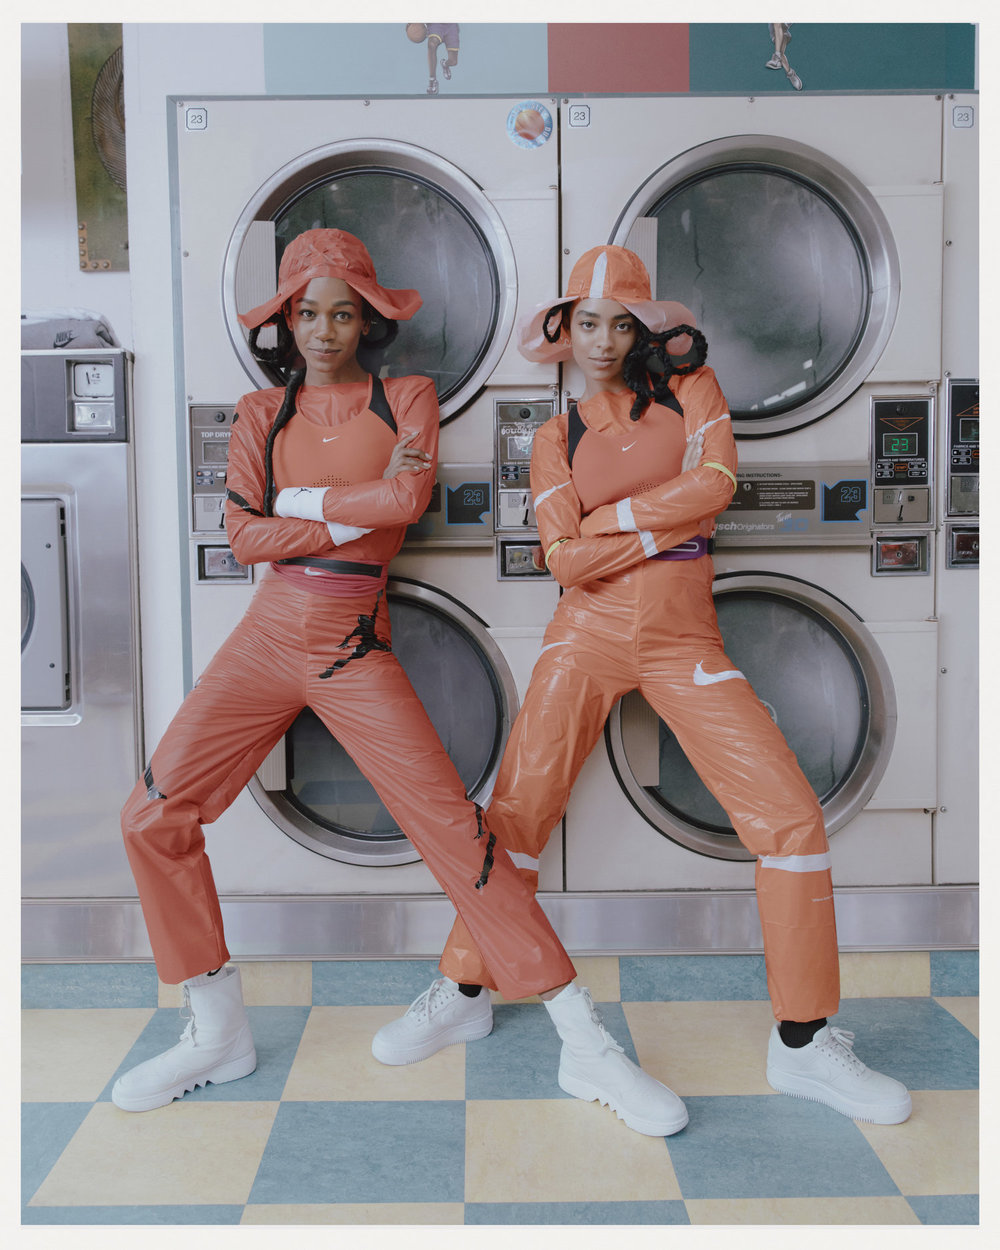 Project //  The 1 Reimagined - Nike  Role  // Designed and sewed plastic suits and hats           Photographer //  Kristin-Lee Moolman                                                 Models  // Abra, Kelsey Lu  Stylist //  Ib Kamara